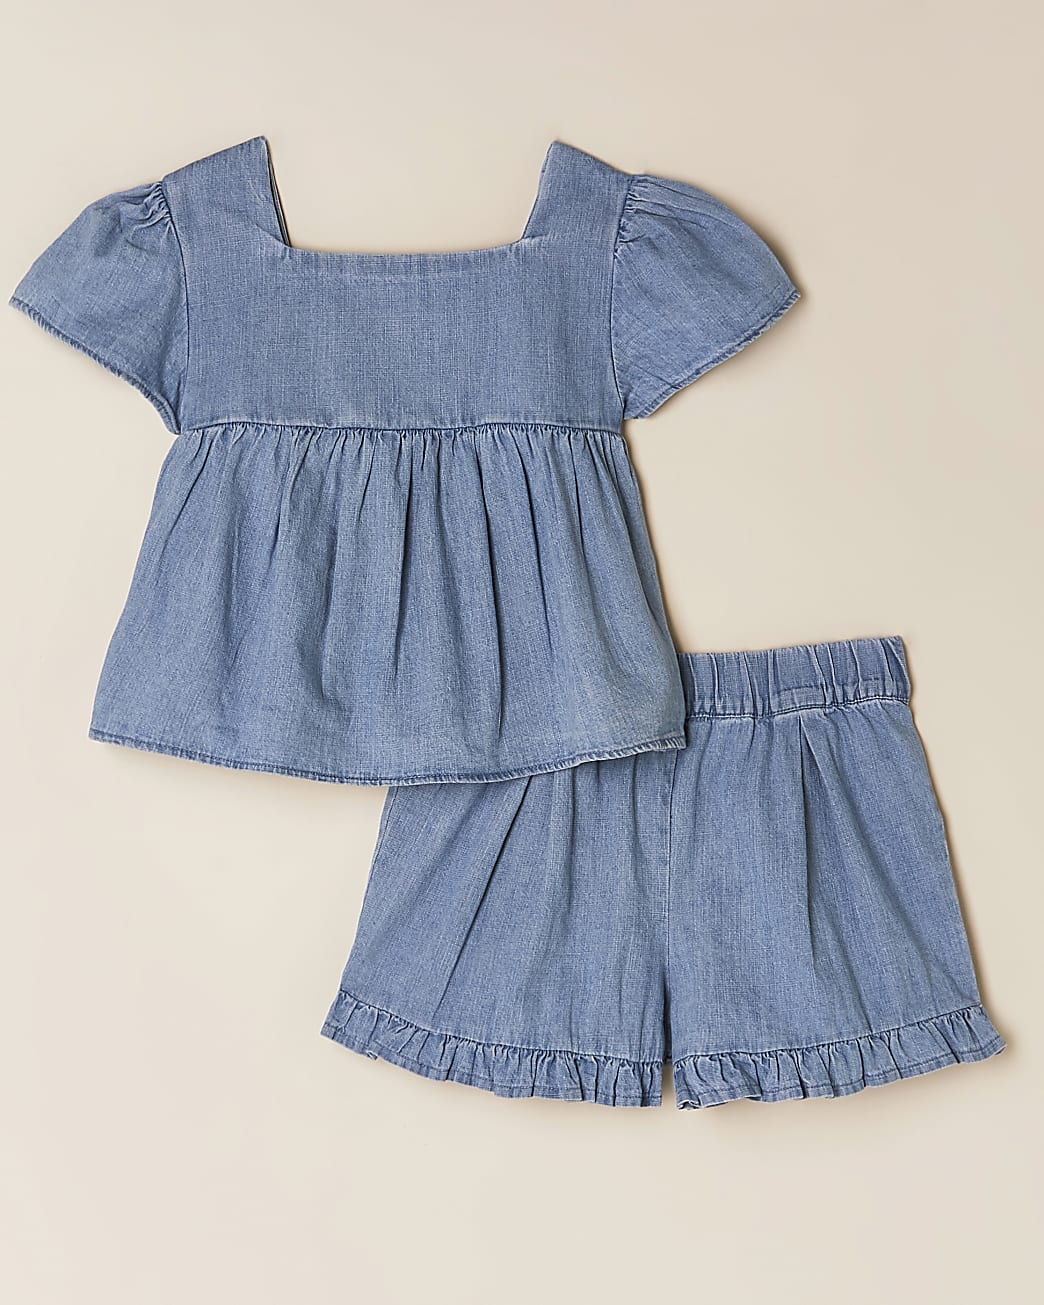 Girls denim top and shorts outfit